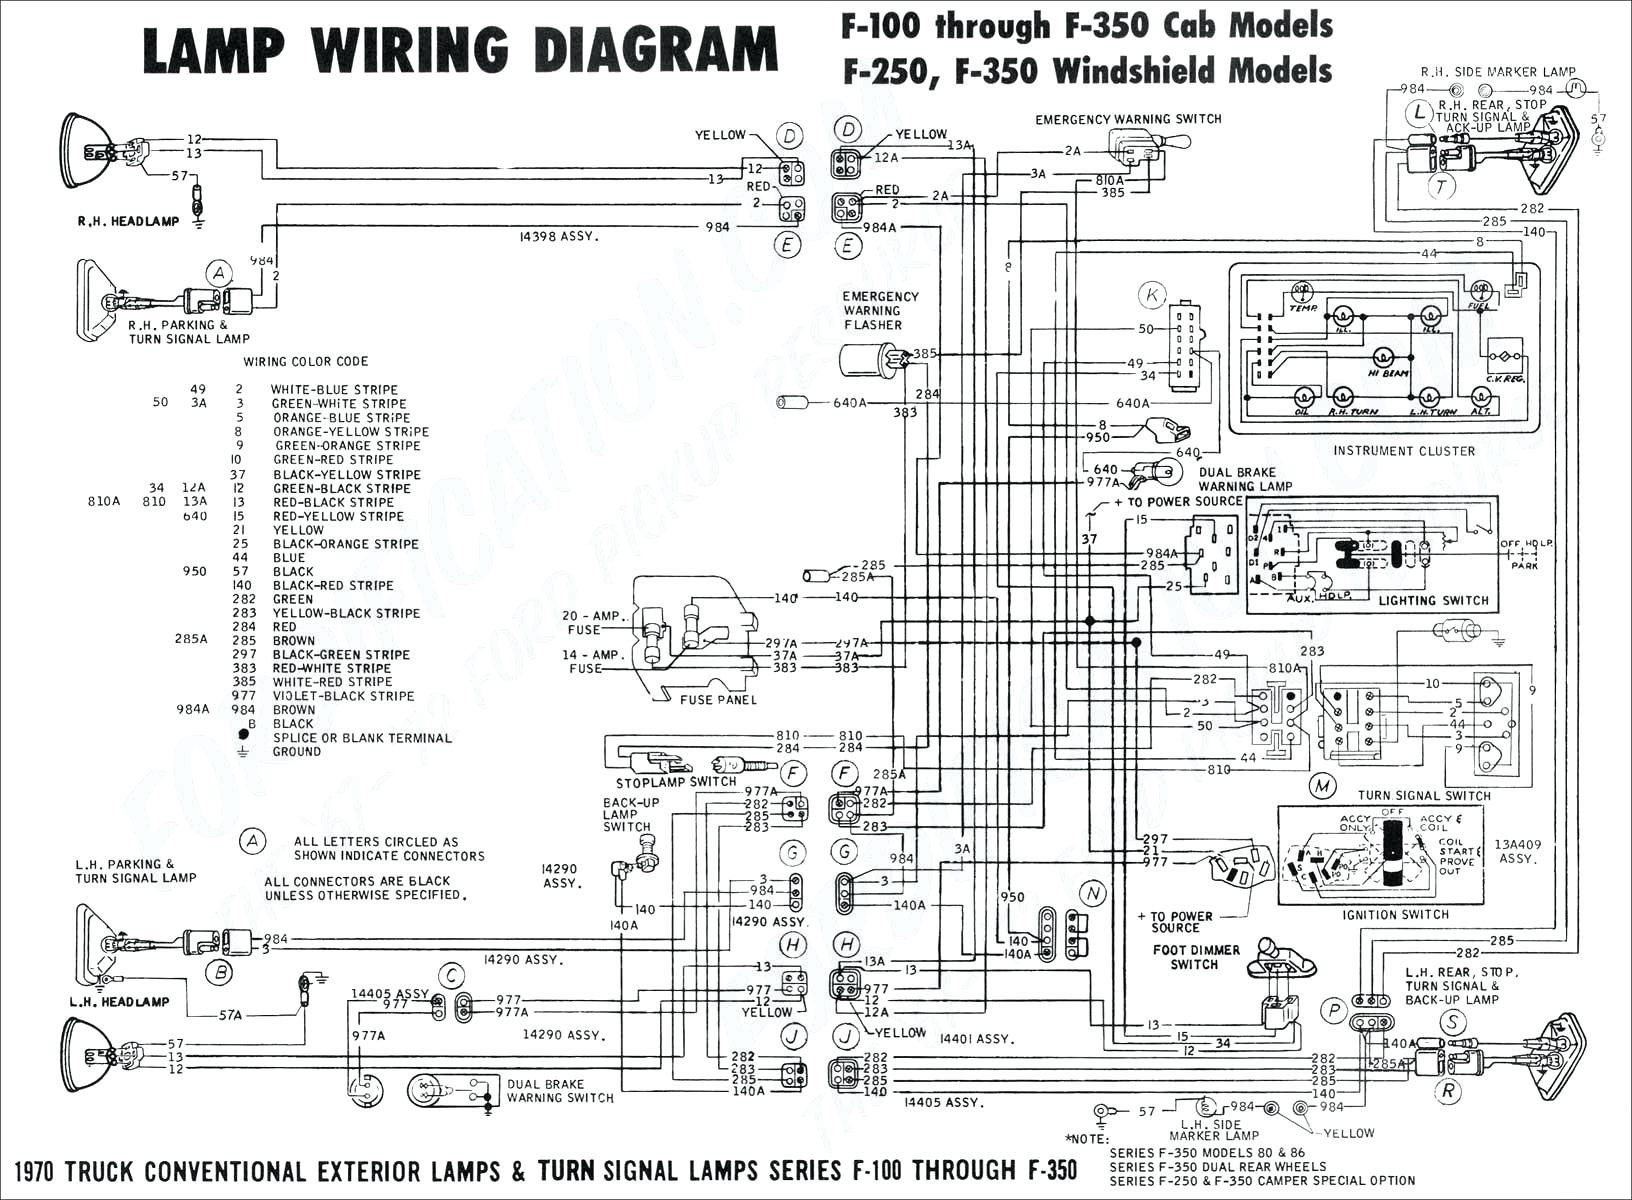 DIAGRAM] 1977 Ford F 150 Tail Light Wiring Diagram FULL Version HD Quality Wiring  Diagram - DIAGRAMVAPORBLIND.CIGARREN-ULLRICH.DEcigarren-ullrich.de